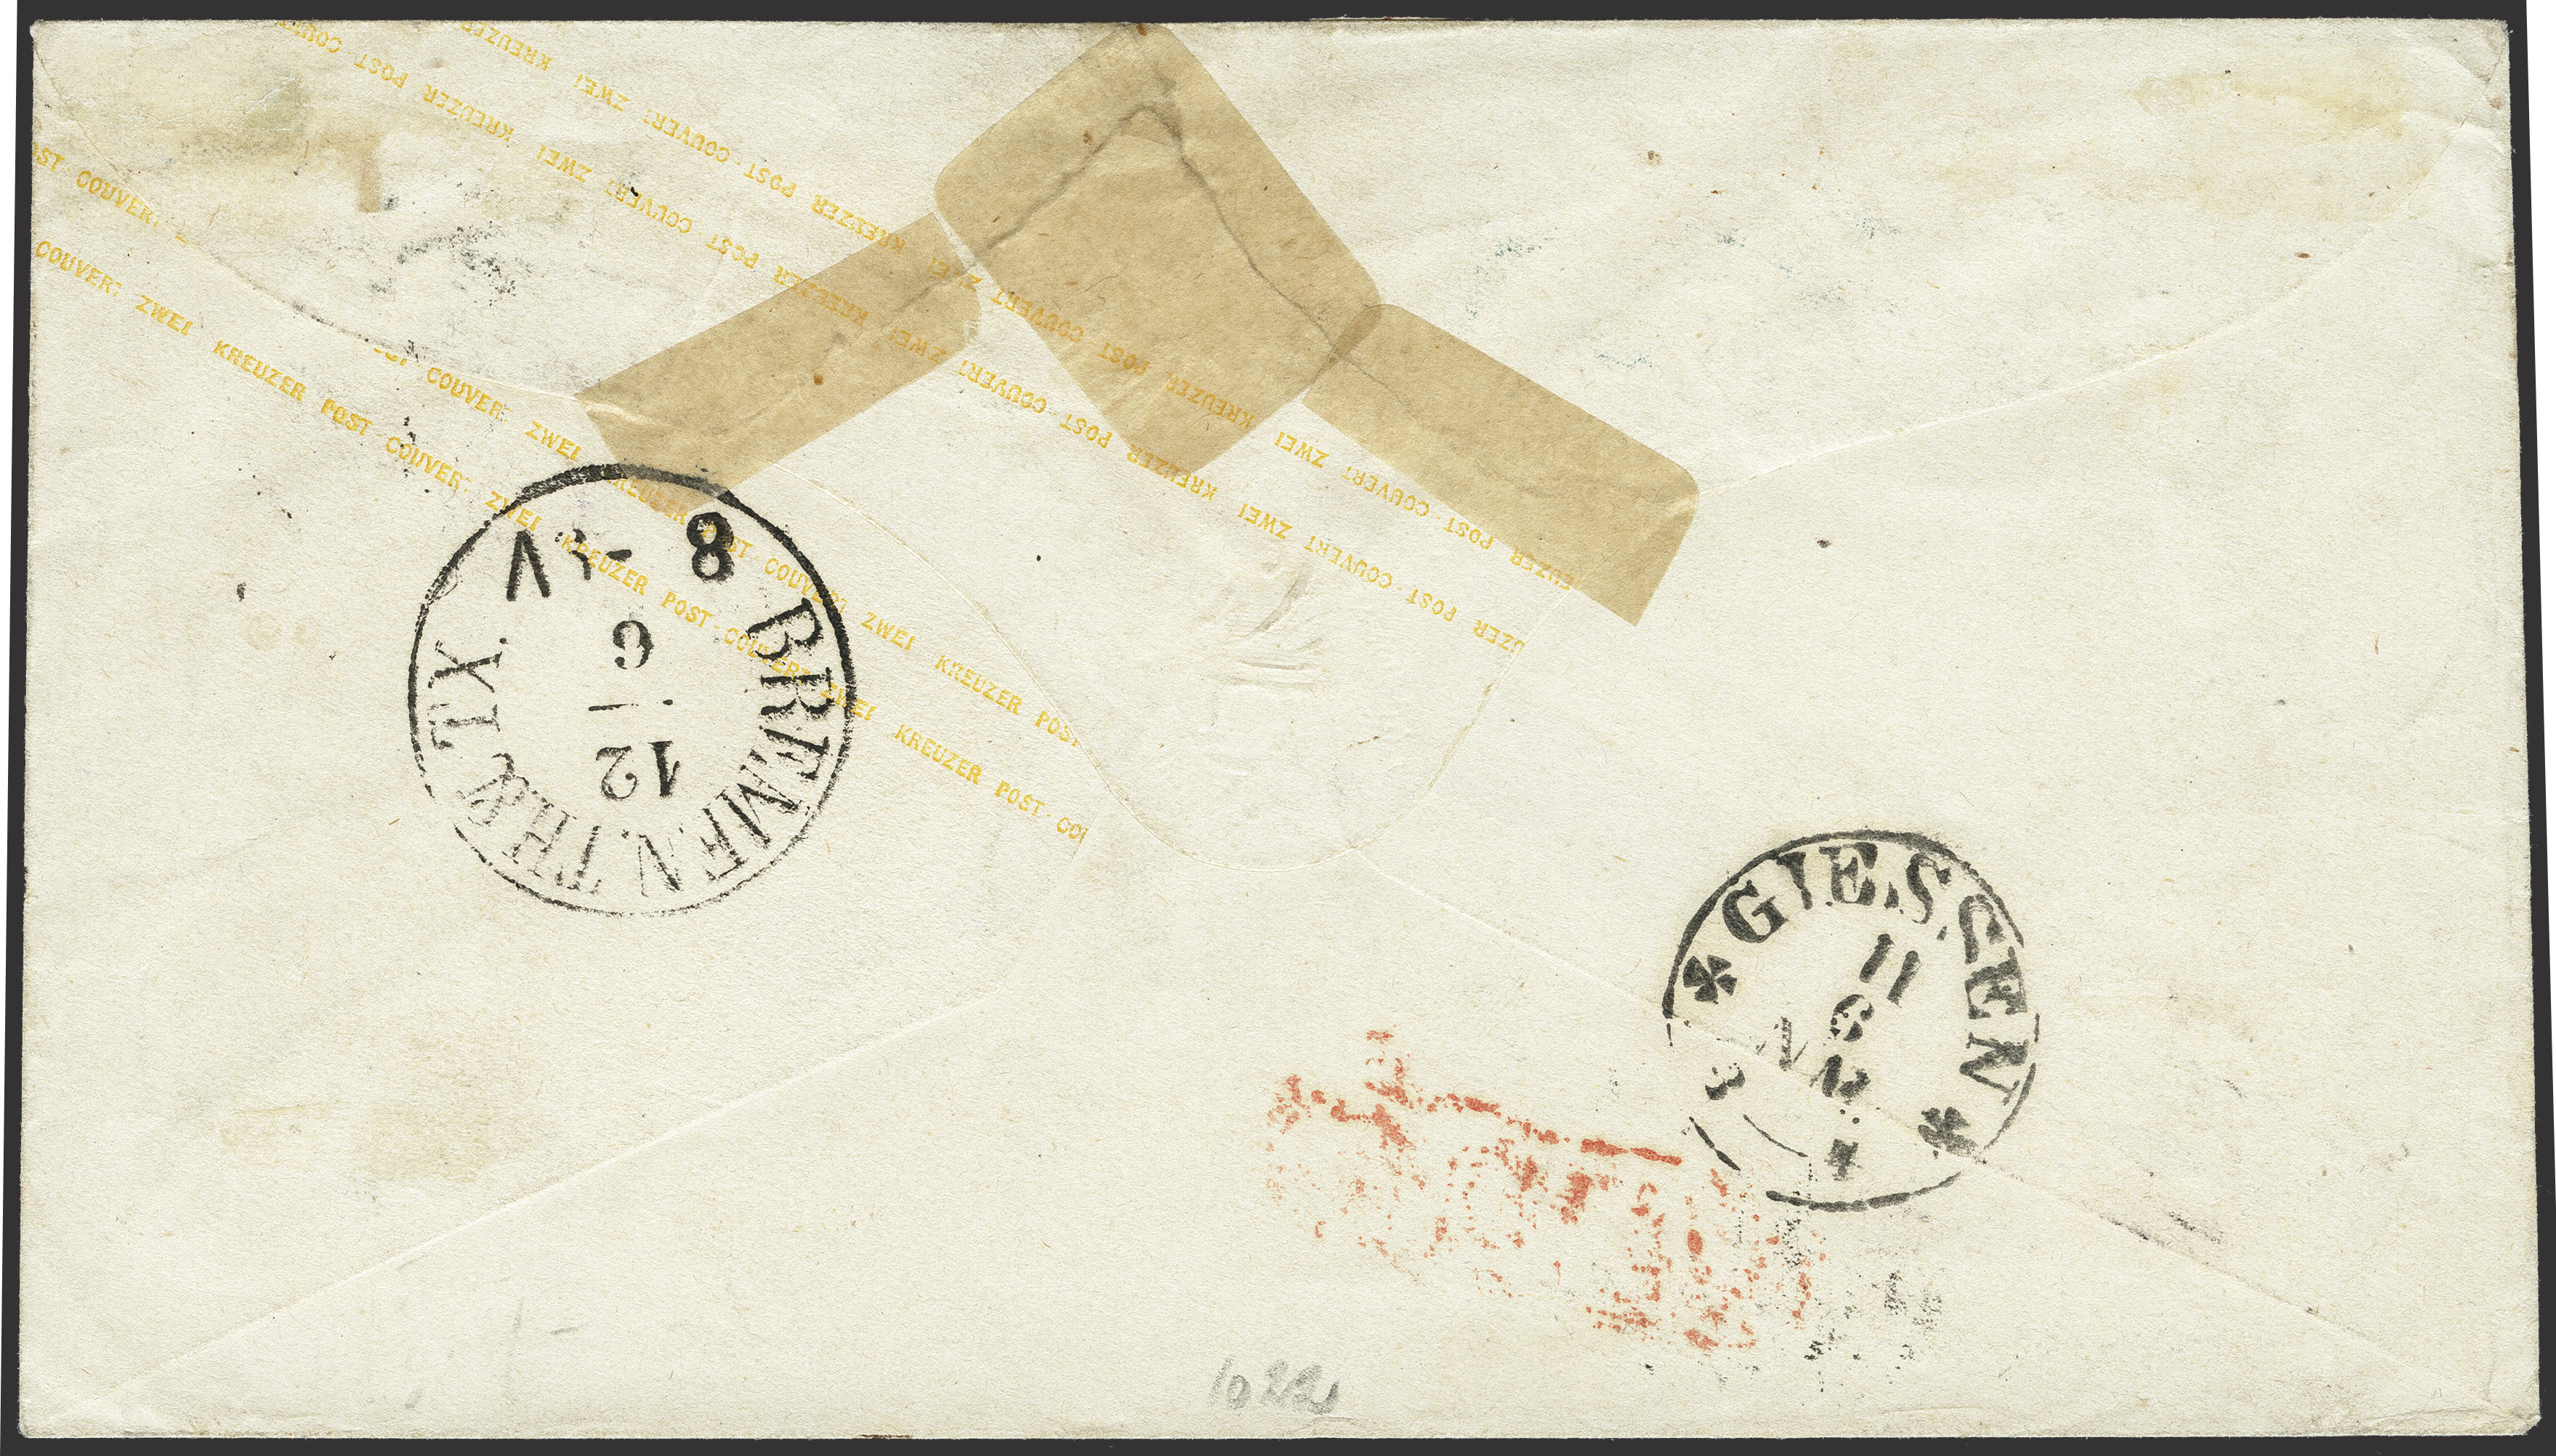 Lot 271 - thurn and taxis Thurn and Taxis - postal stationary -  Heinrich Koehler Auktionen Heinrich Köhler Auction 377 - Day 6